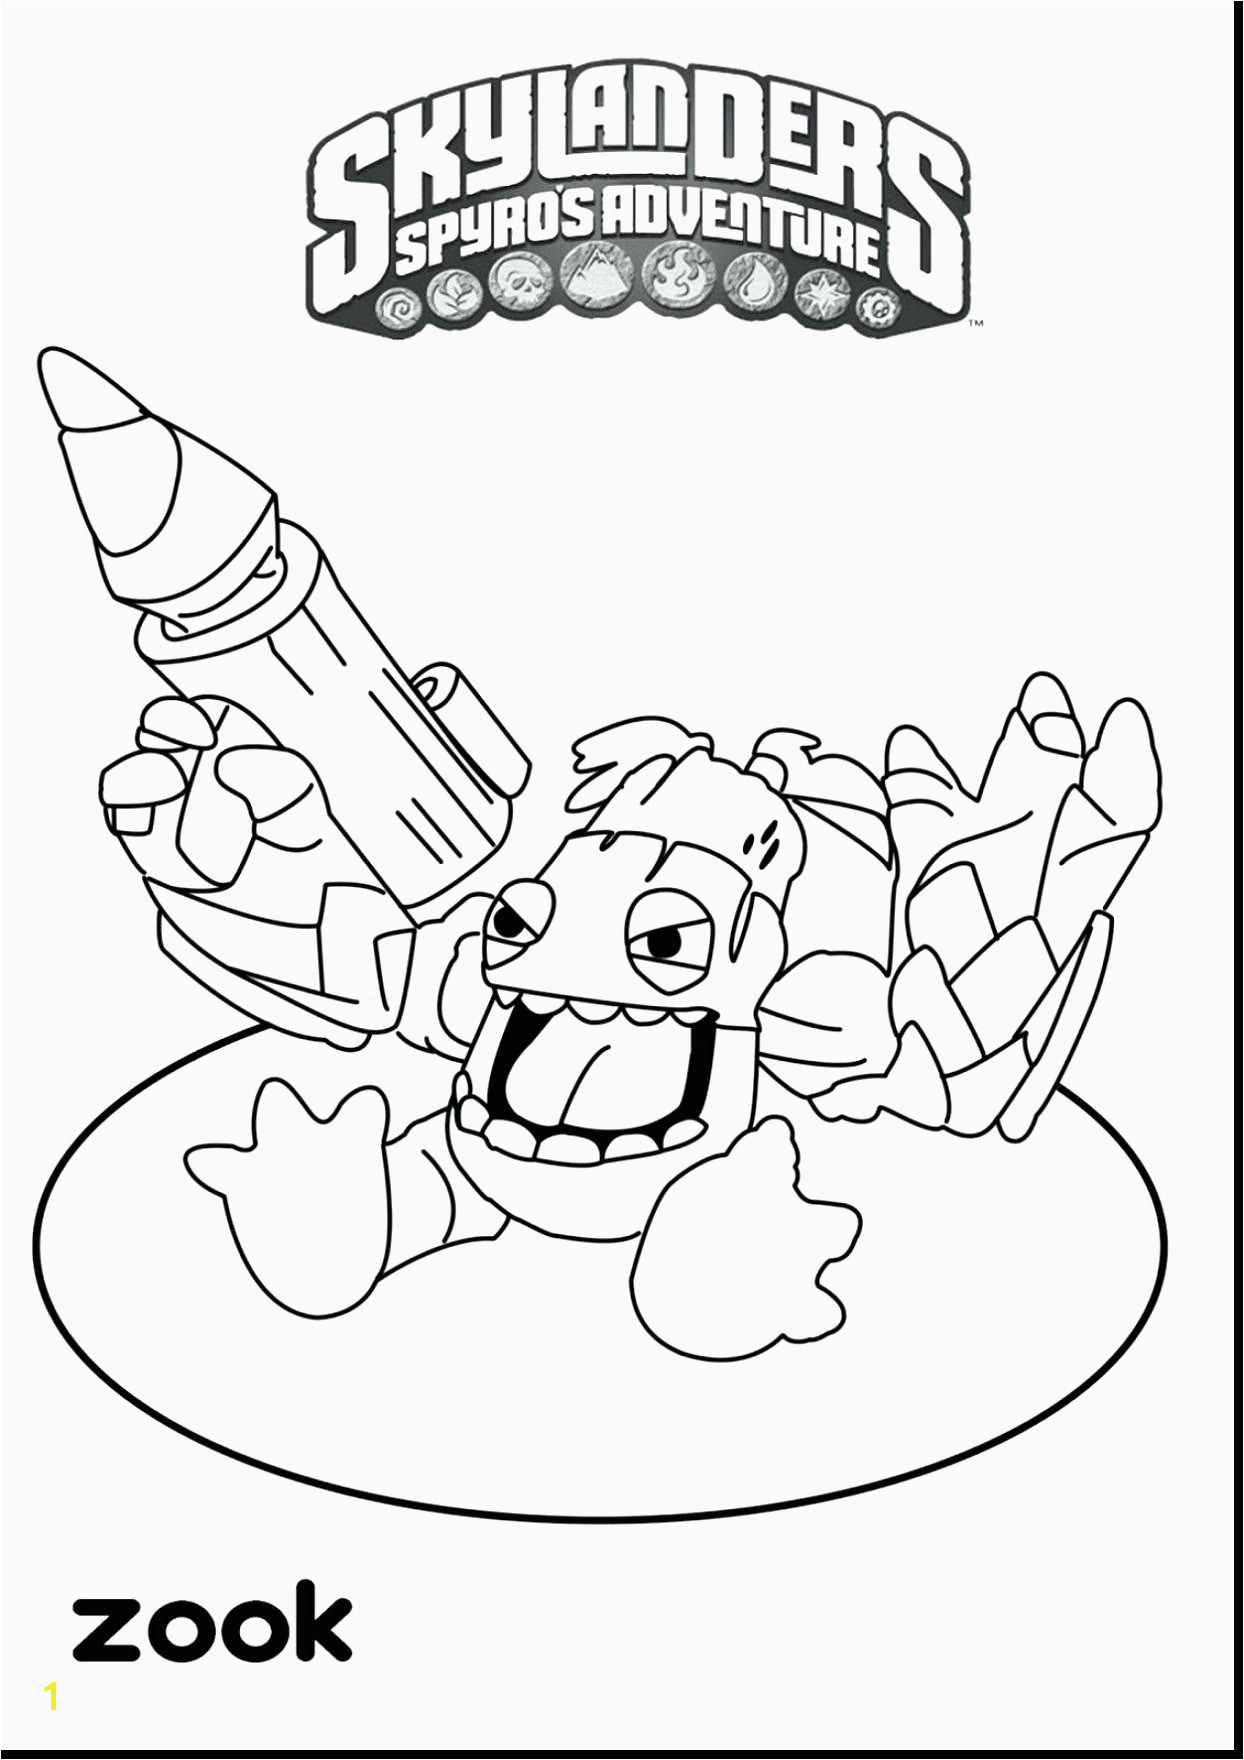 Intricate Coloring Pages Intricate Coloring Pages Beautiful Detailed Coloring Pages Inspirational sol R Coloring Pages